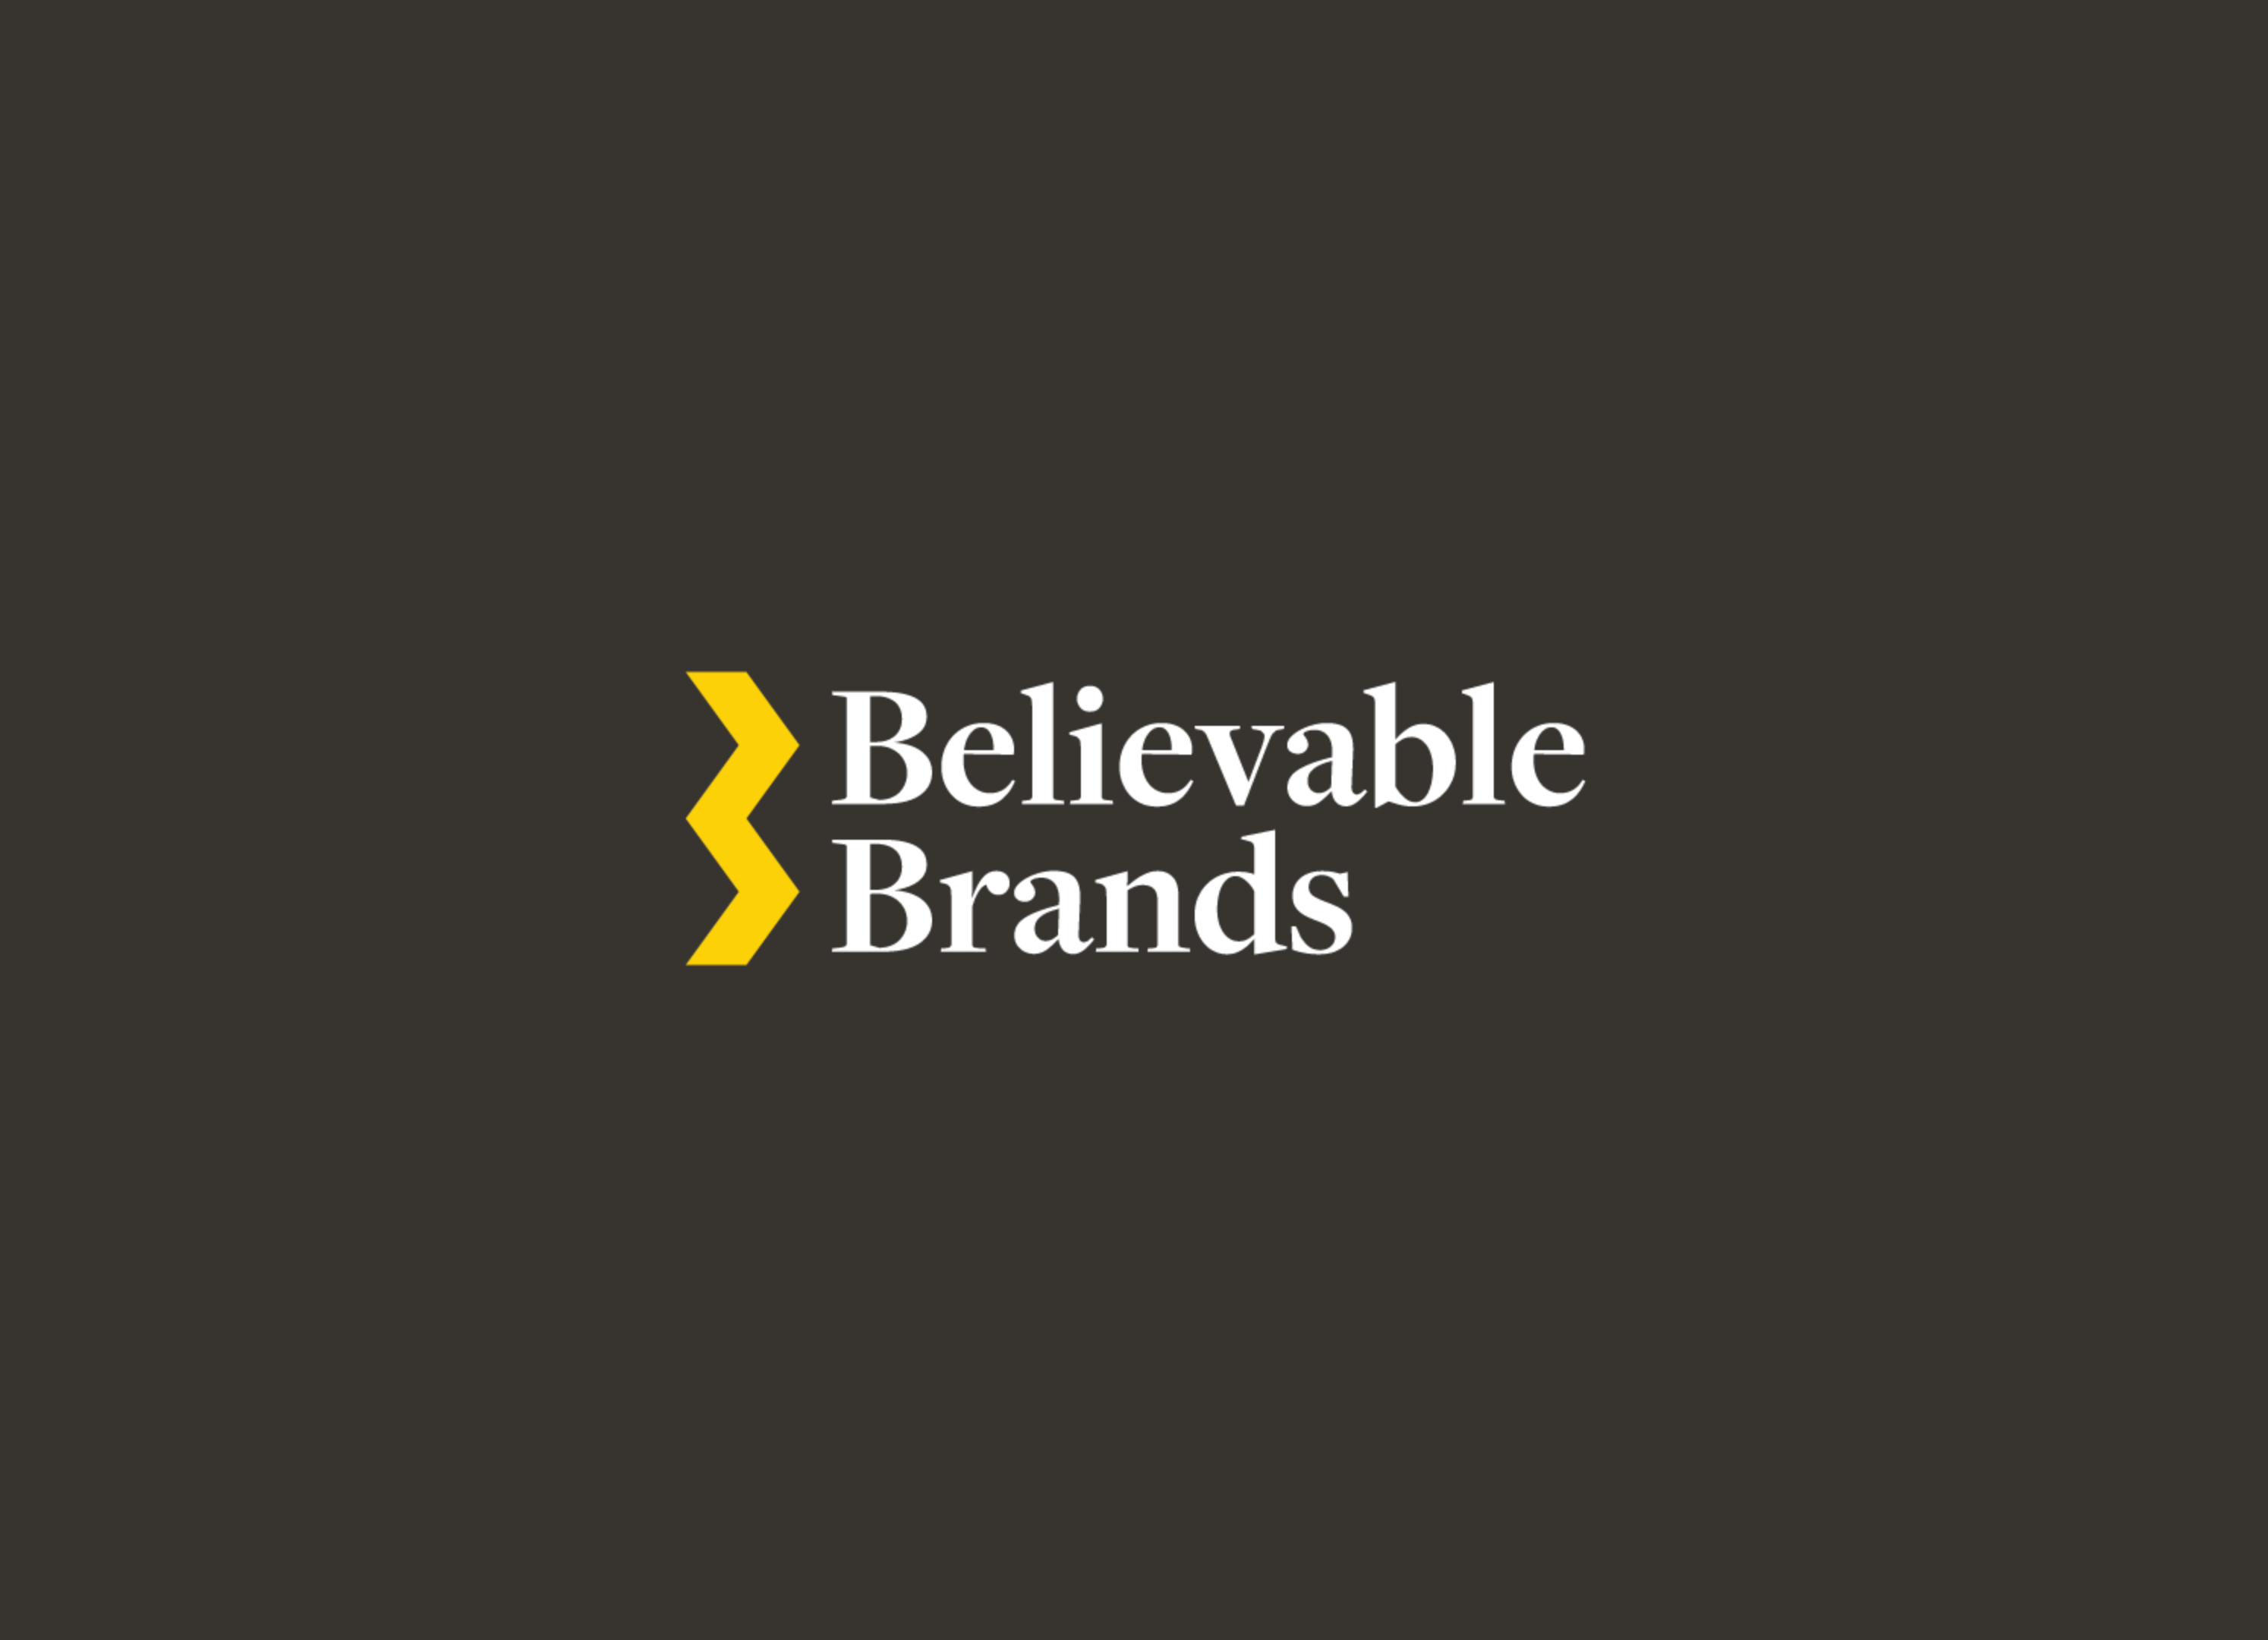 Announcing Believable Brands